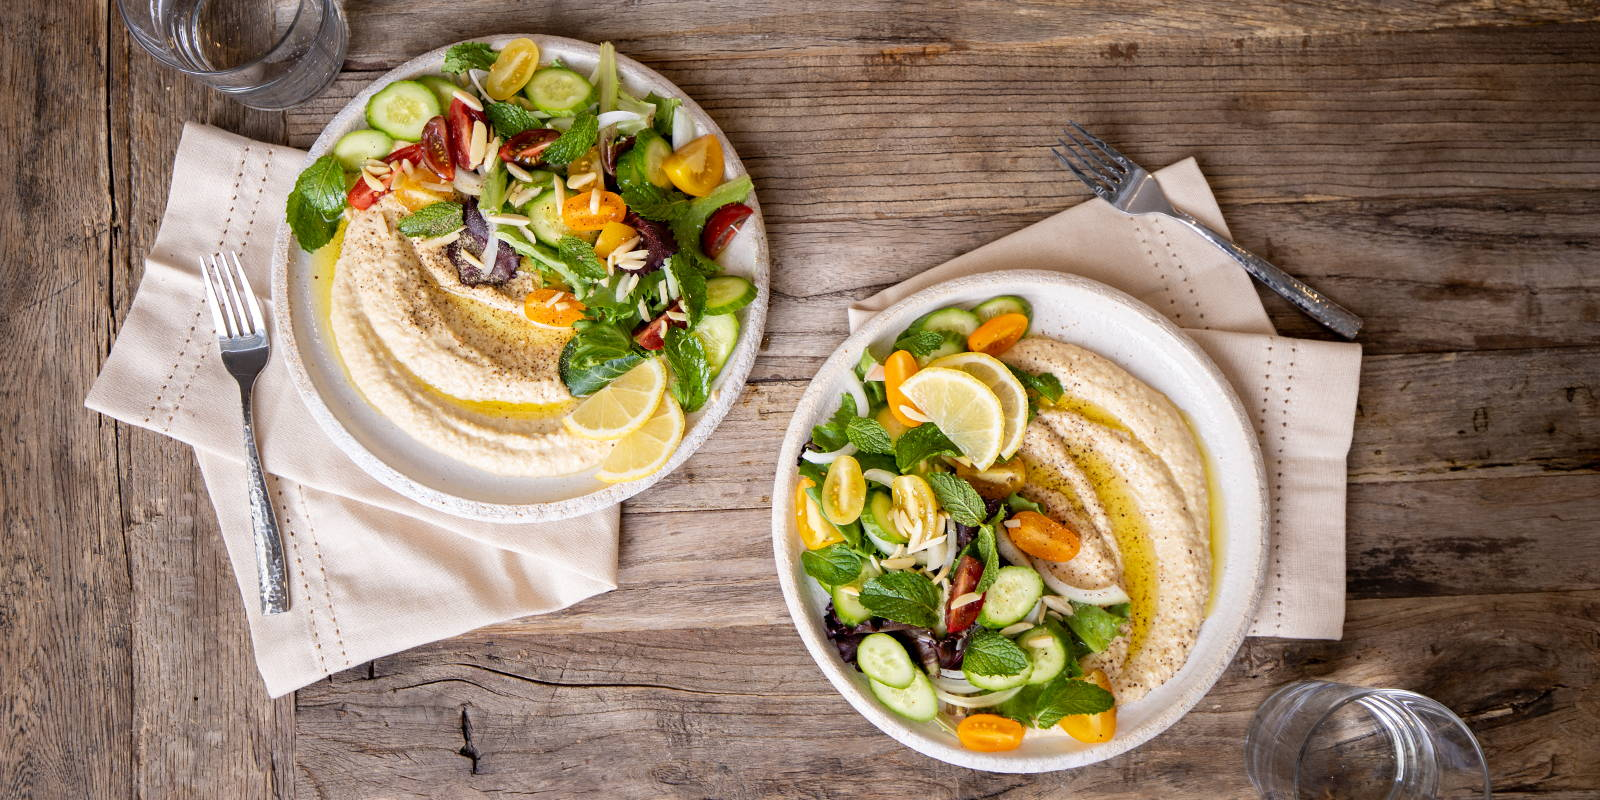 Serving hummus at home as a salad dressing and complete healthy vegan, plant-based meal.